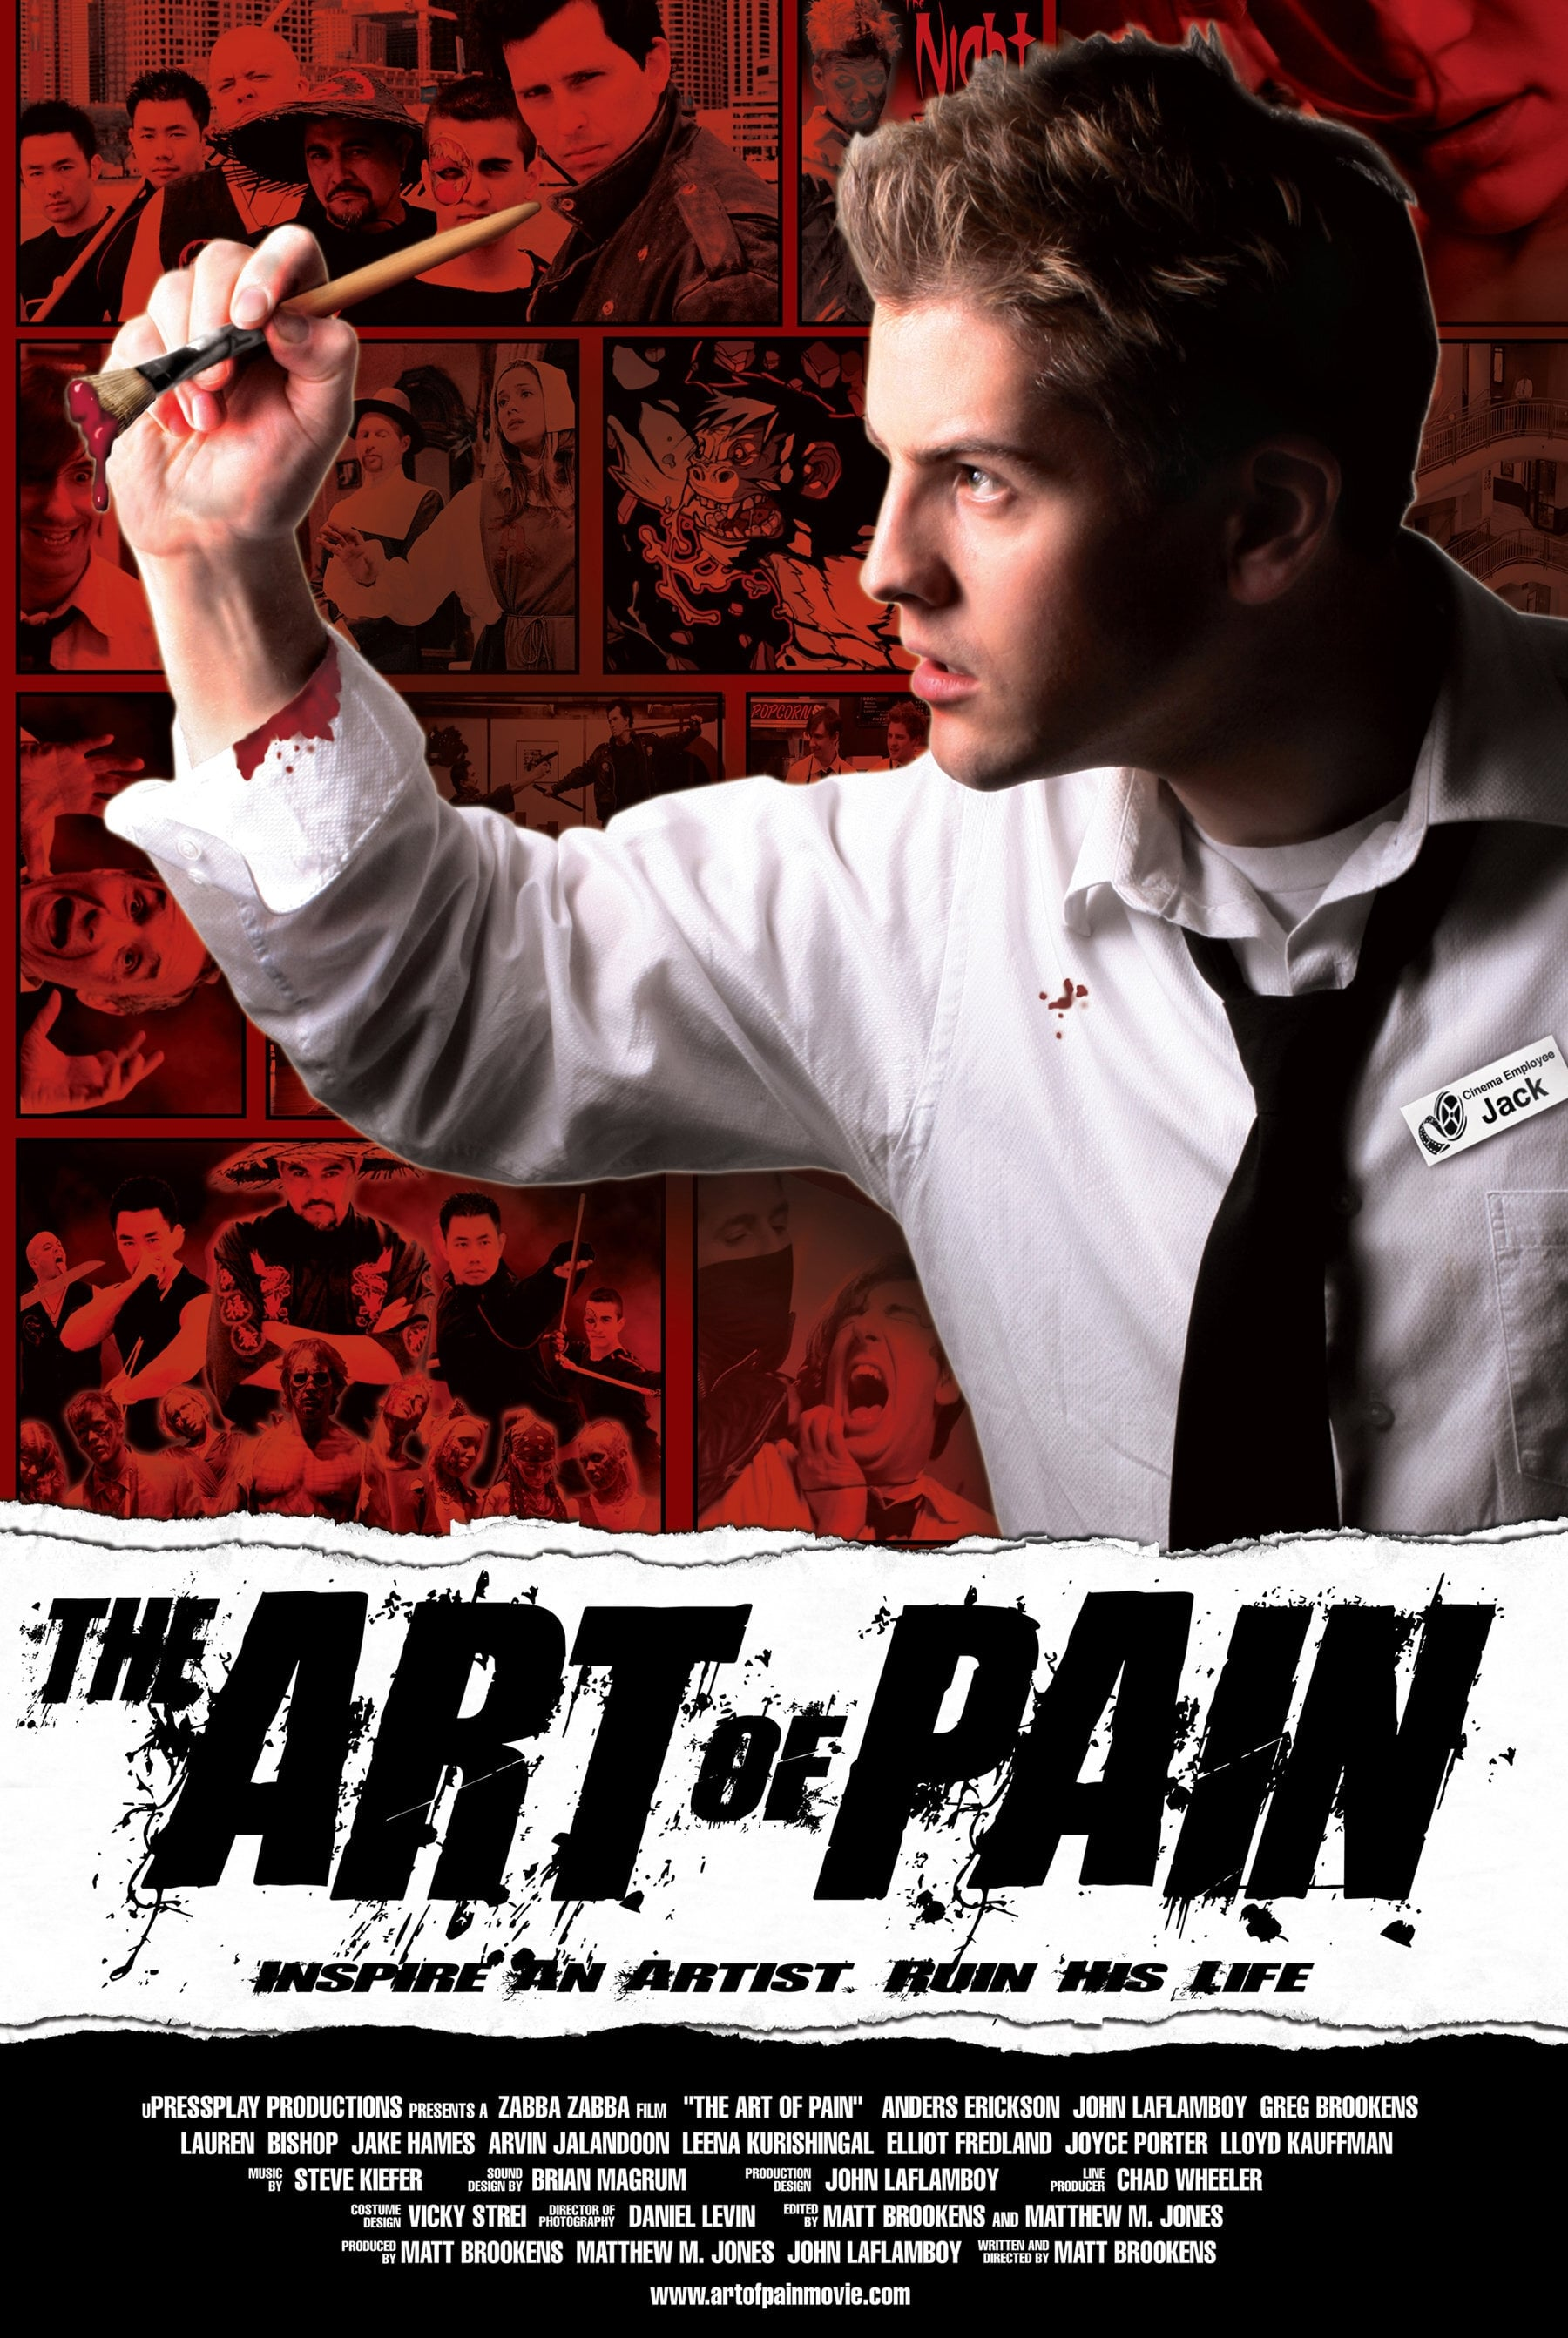 The Art of Pain (2008)